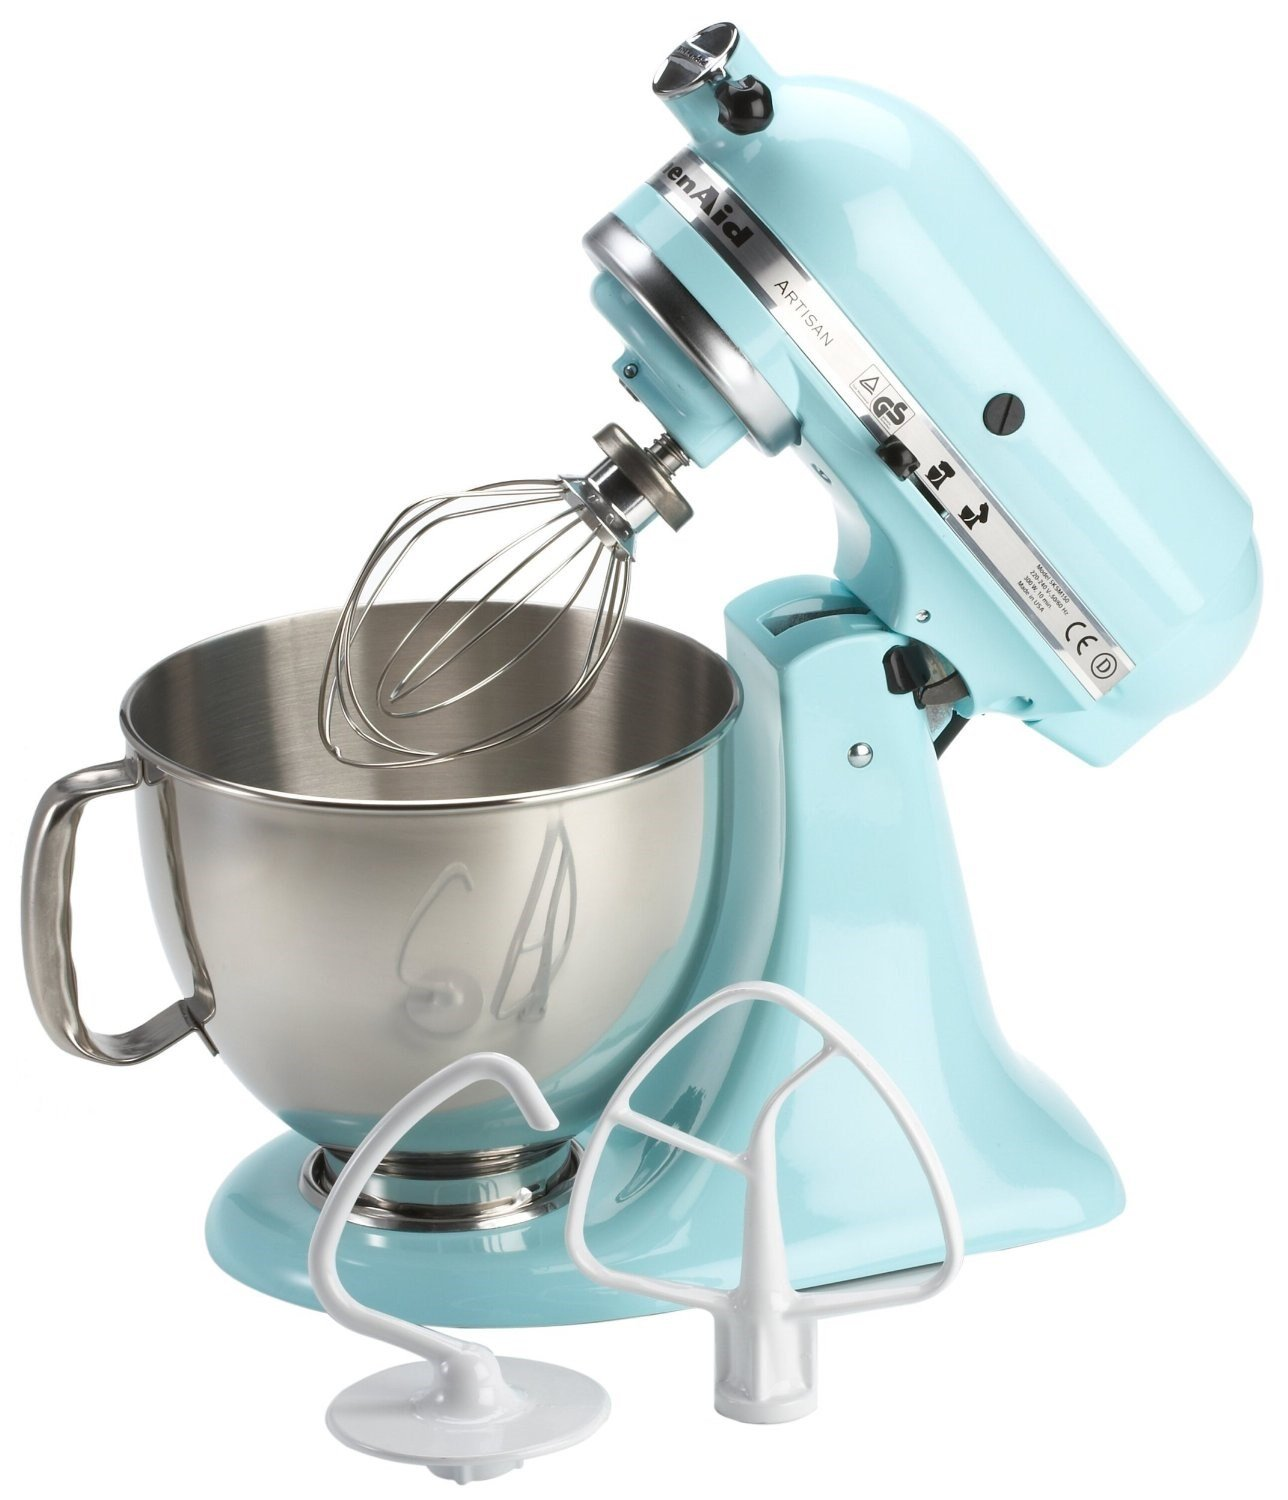 KitchenAid 175 Artisan 4.8L Stand Mixer, Pistachio: Amazon.co.uk ...